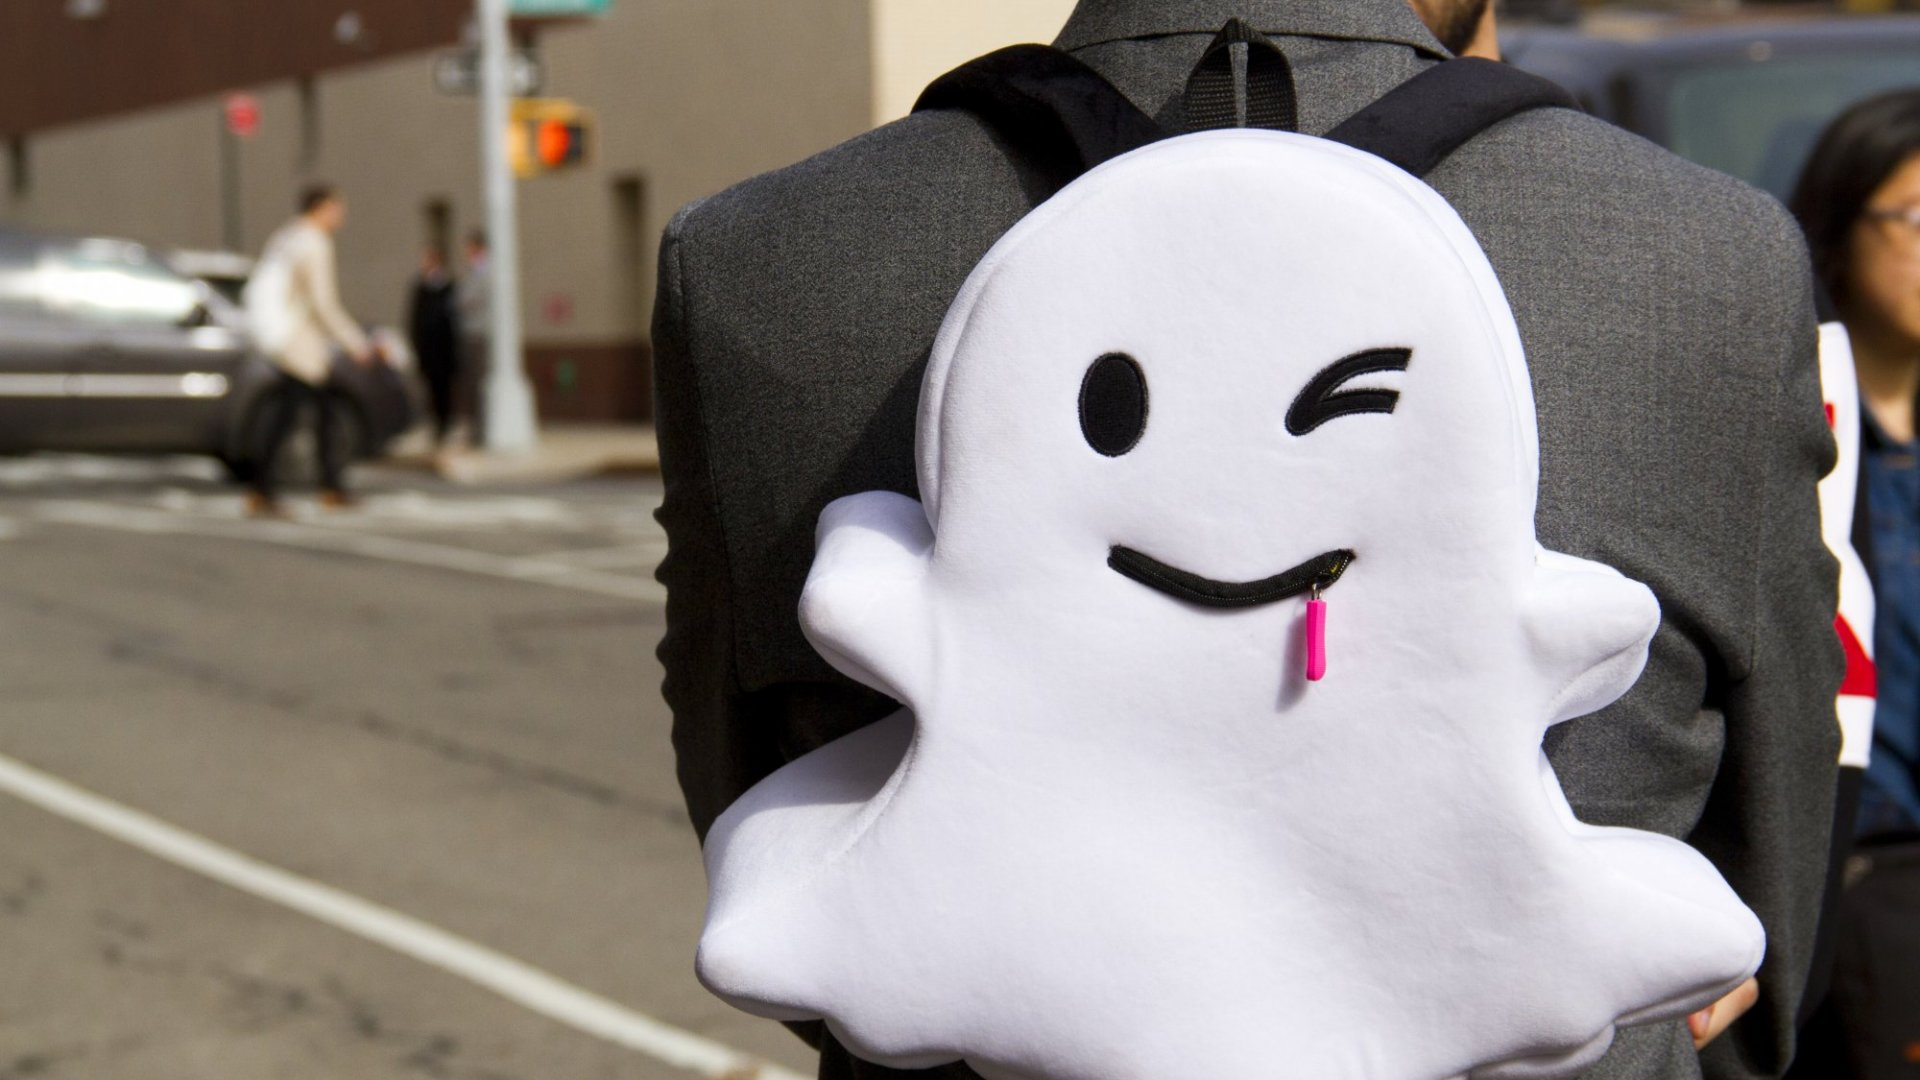 Snapchat Poised to Surpass Twitter Usage in 2016, Report Says